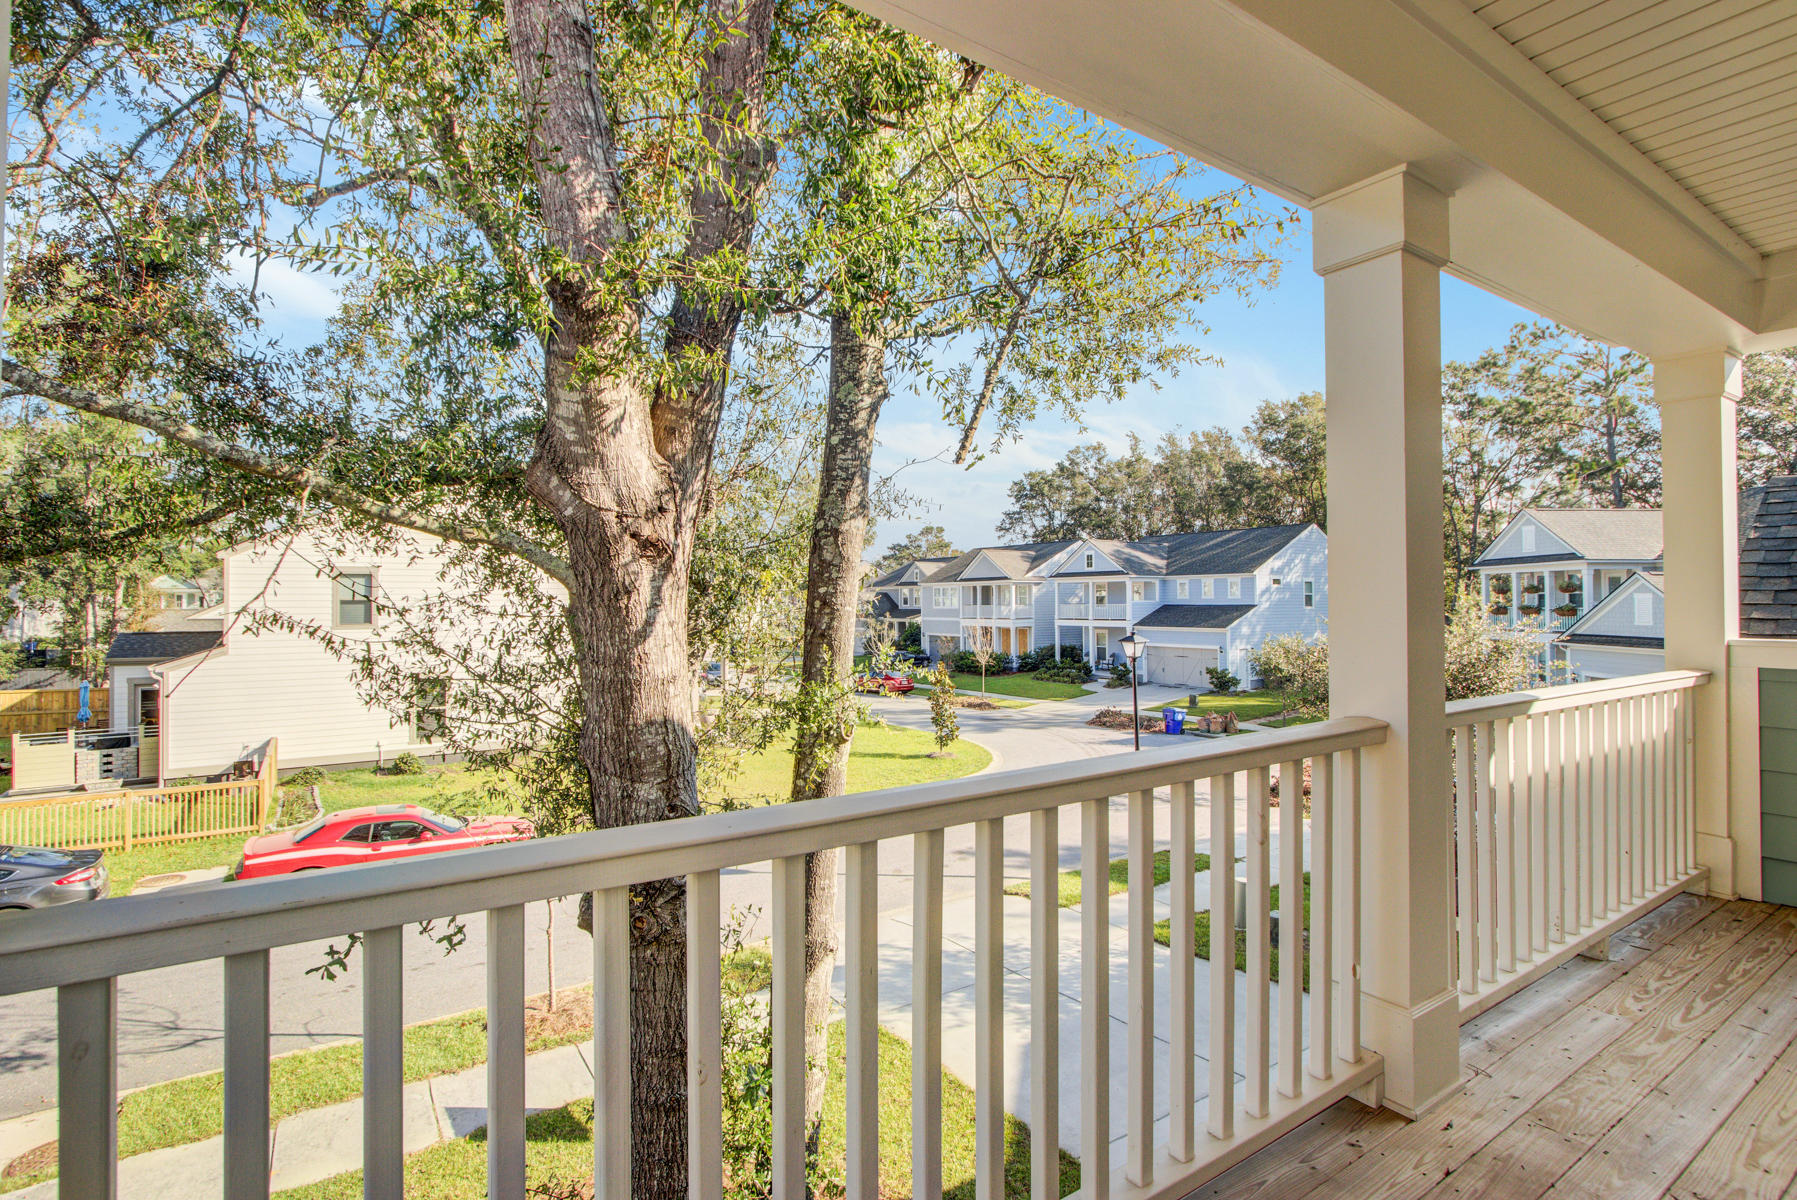 Dills Bluff Homes For Sale - 1146 Bright, Charleston, SC - 34